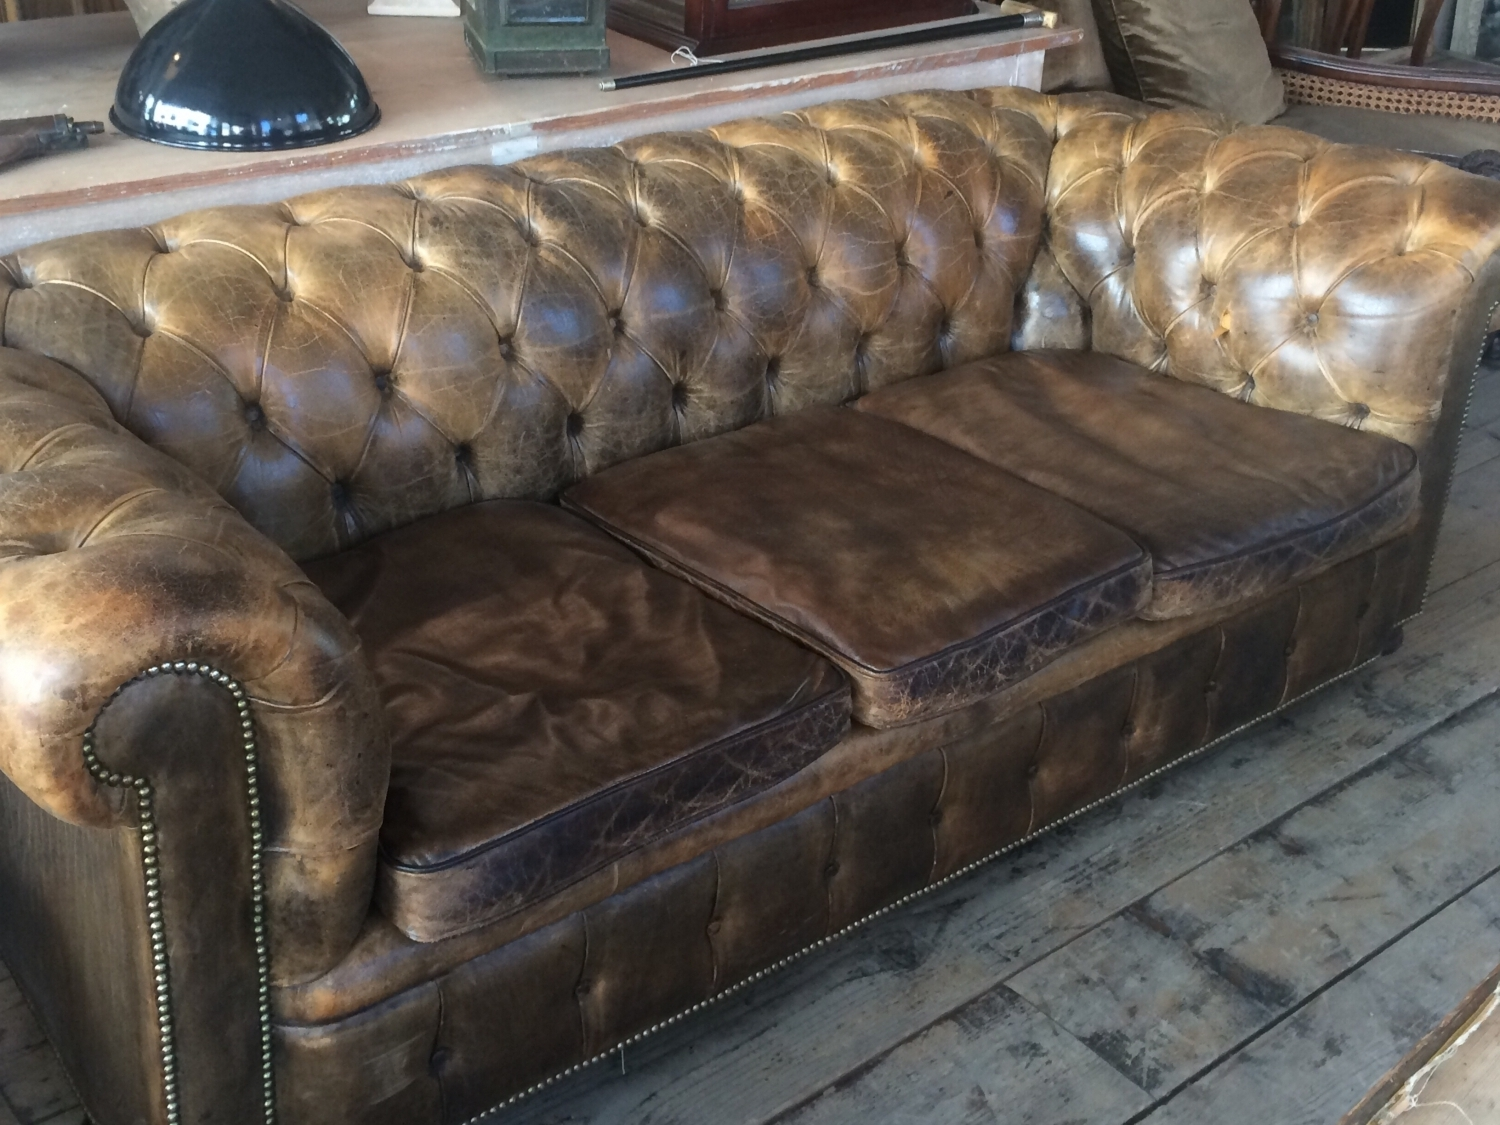 Vintage Chesterfield Sofa In Furniture Pertaining To Current Vintage Chesterfield Sofas (View 6 of 15)